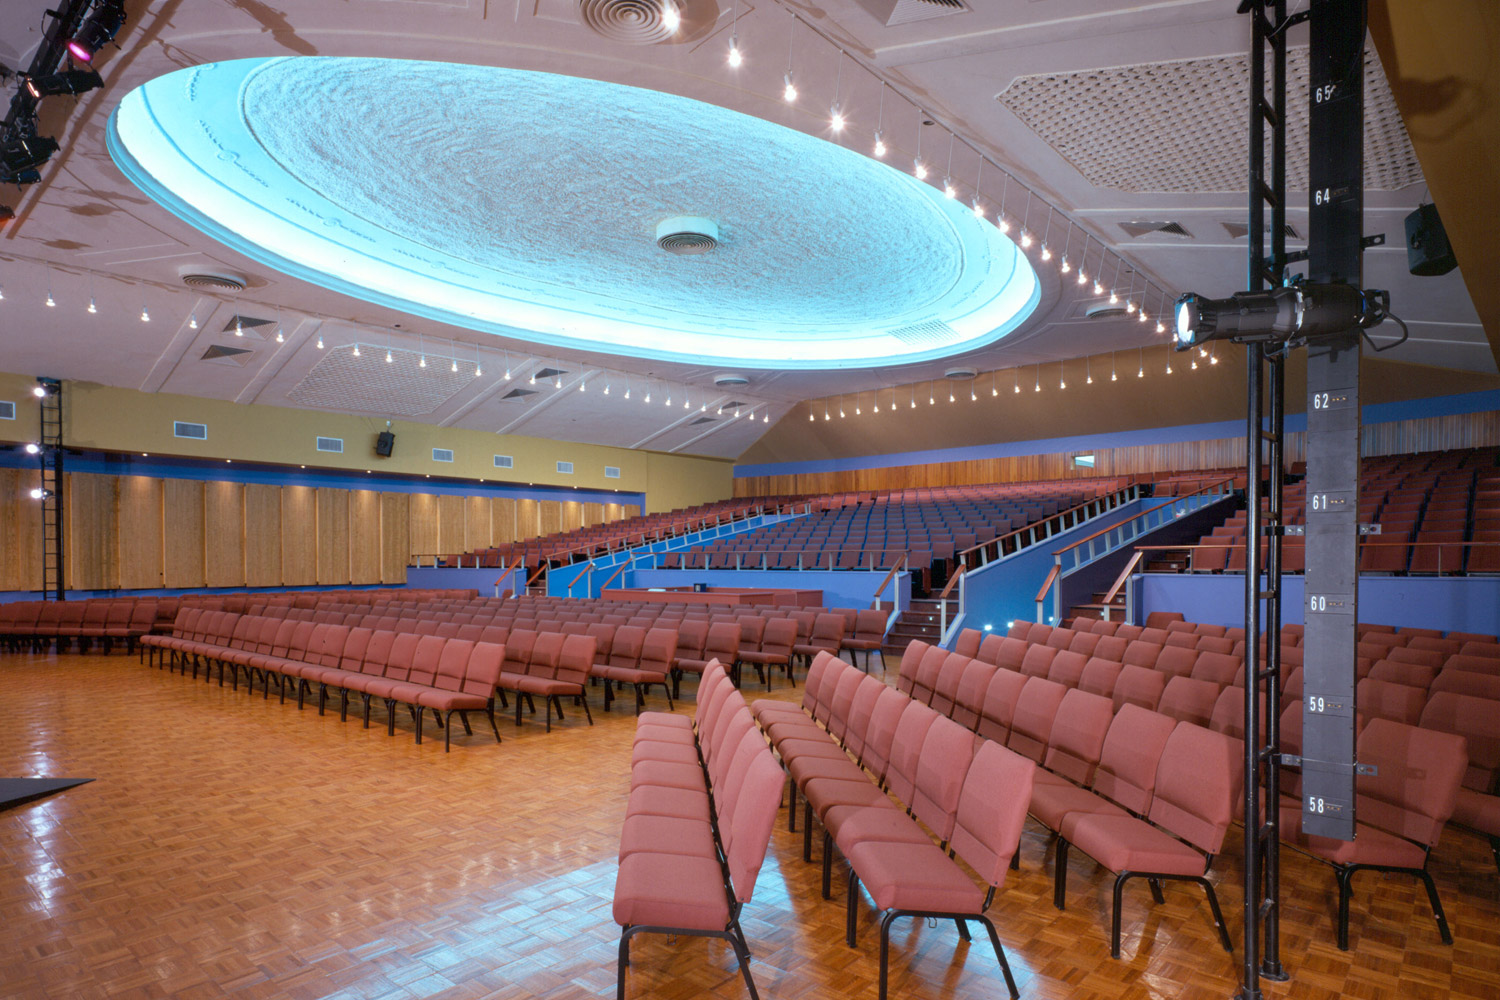 WSDG completed a major renovation project for Crossroads Tabernacle and Boden Center for The Performing Arts, a prominent inner-city church in The Bronx, NY. The facility includes an audio/video production studio, and a completely refurbished 800 seat theater. Theater worship side view.